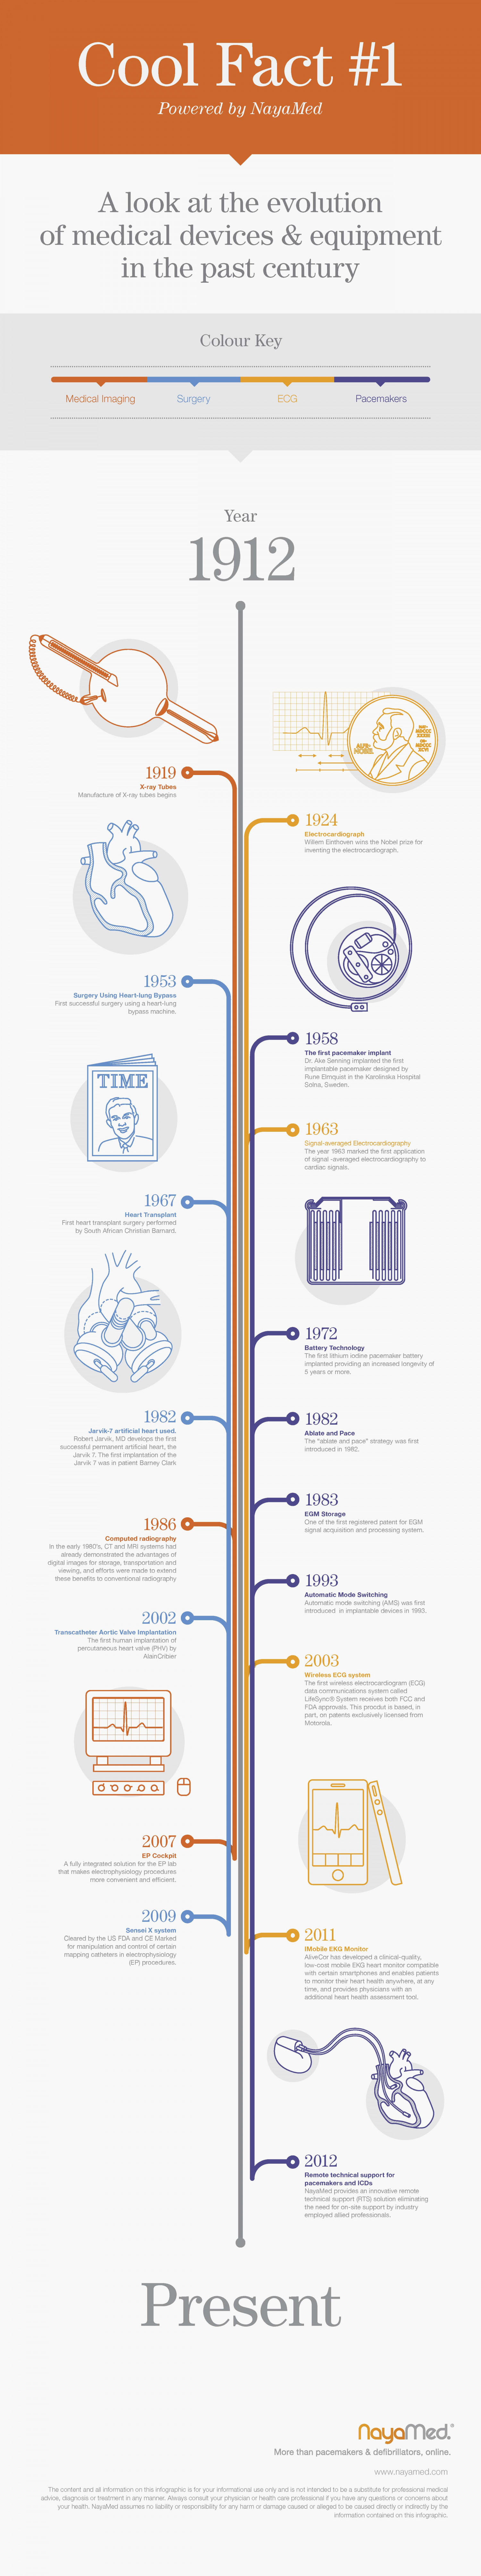 Cool Fact #1 : A look at the evolution of medical devices & equipment in the past century Infographic